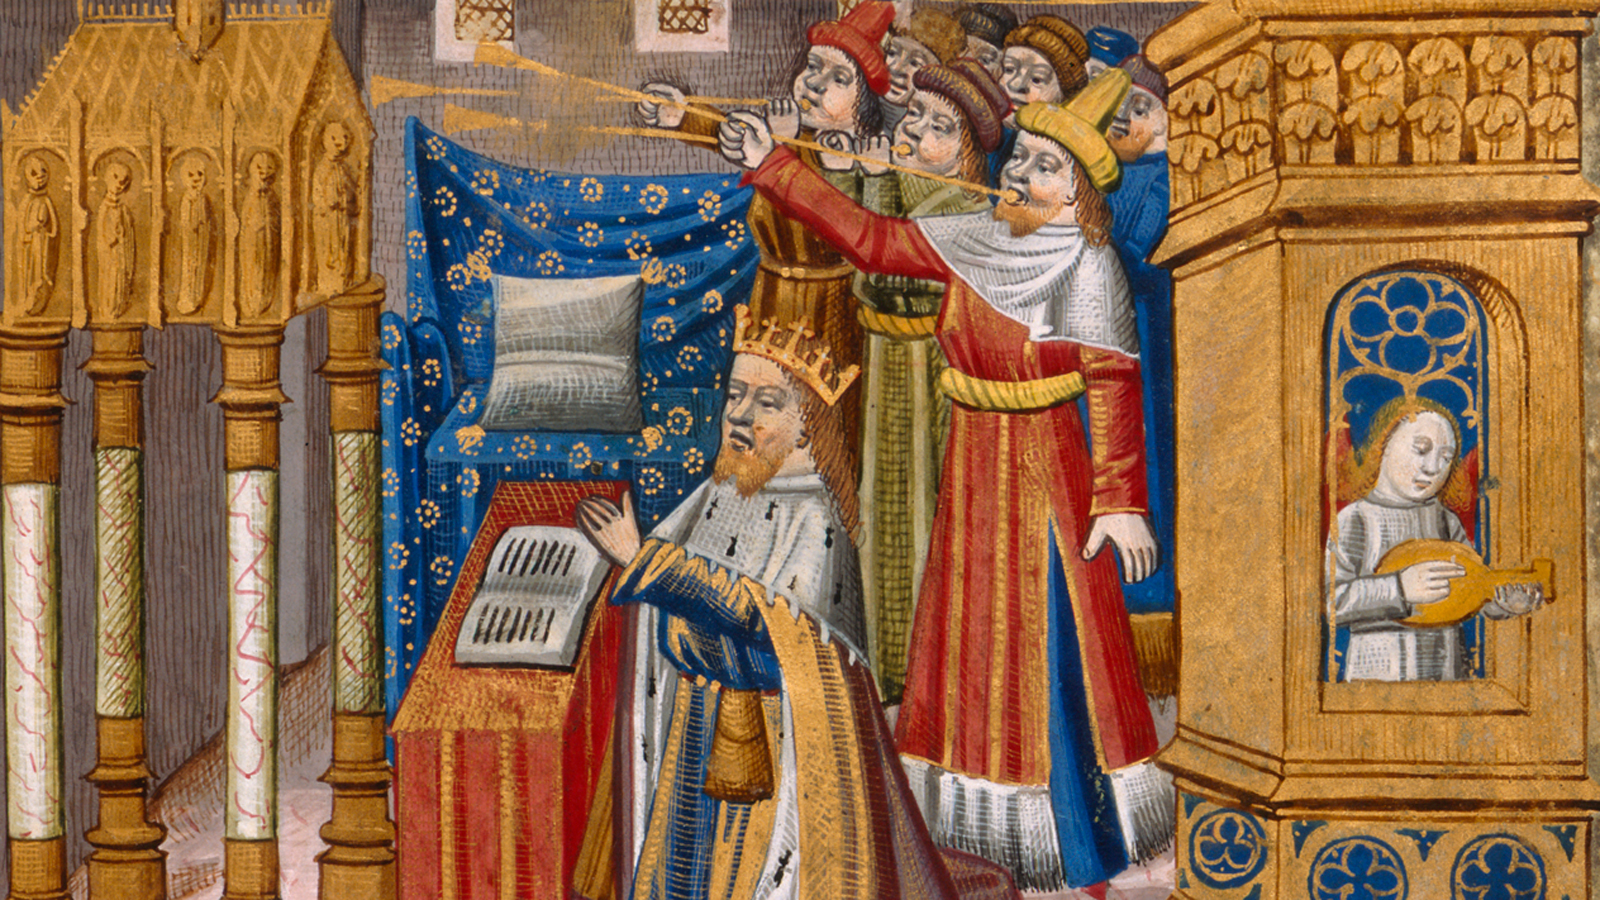 Literature, music and illuminated manuscripts